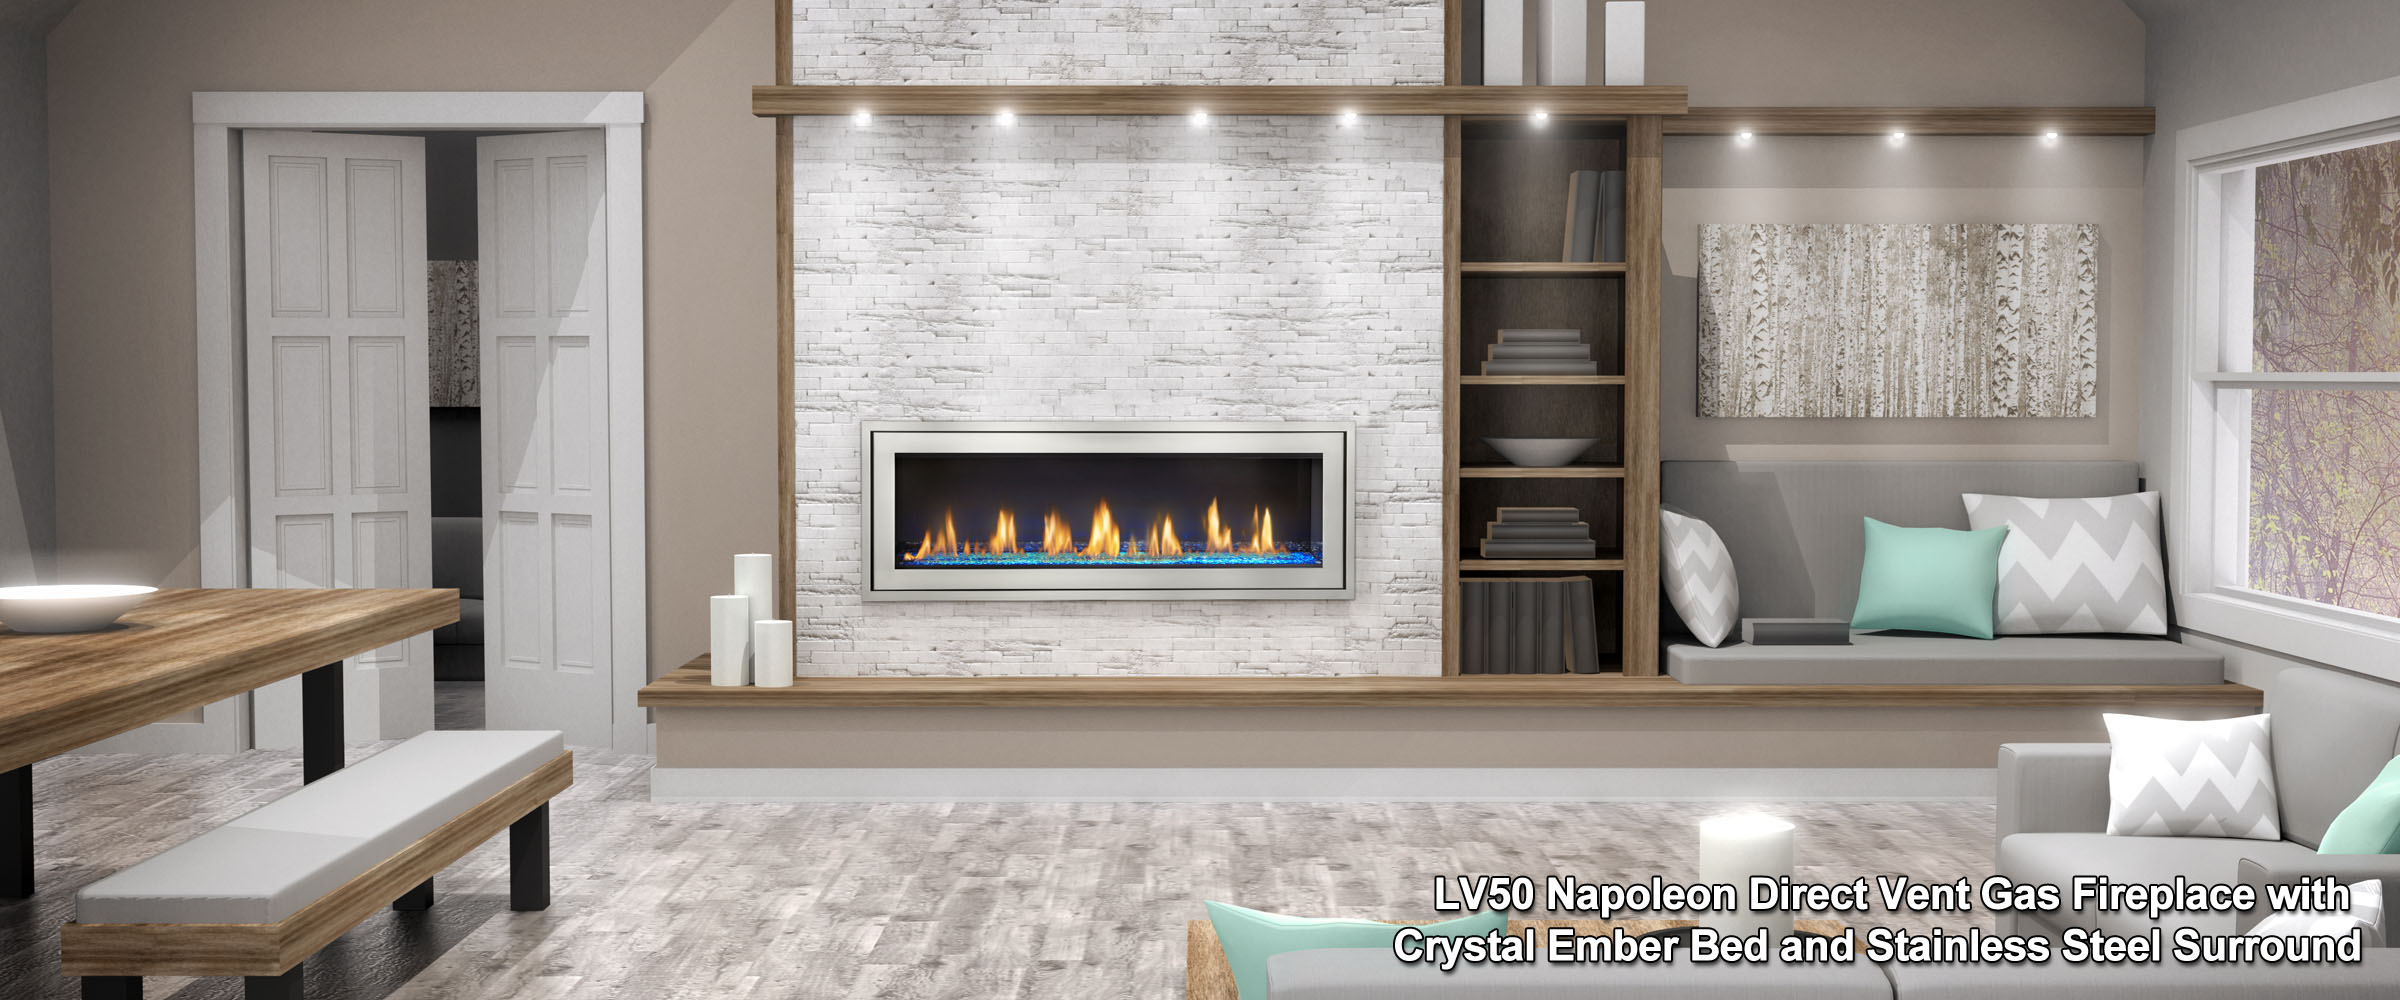 contemporary from log enjoy glowing or mhc with fireplace available linear carrara hearth left a set gas fireplaces warm extra white flames sides right both category large sided corner